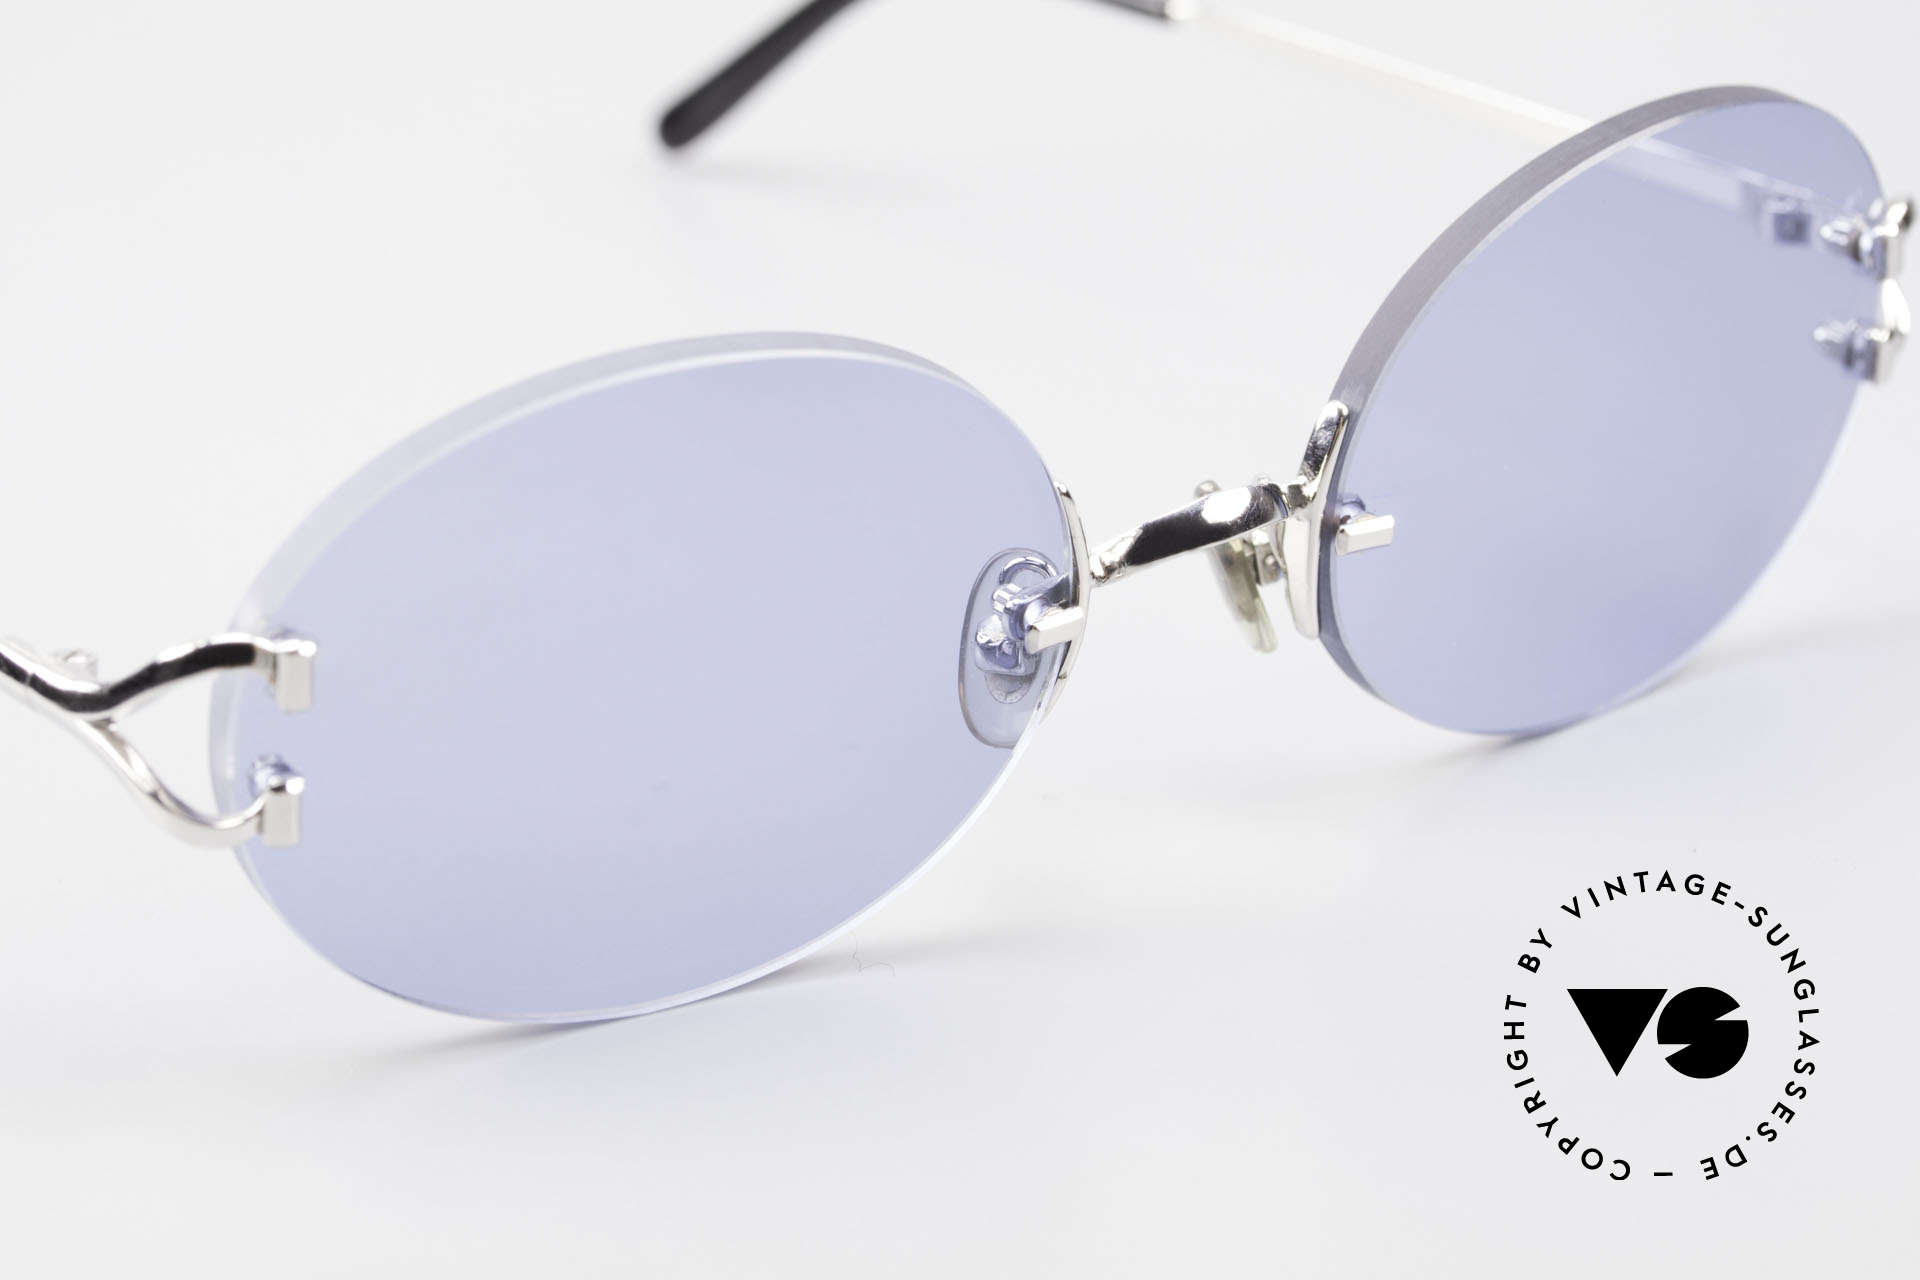 Cartier Rimless Giverny Oval Rimless Luxury Shades, 2. hand model, but in mint condition + Cartier box, Made for Men and Women